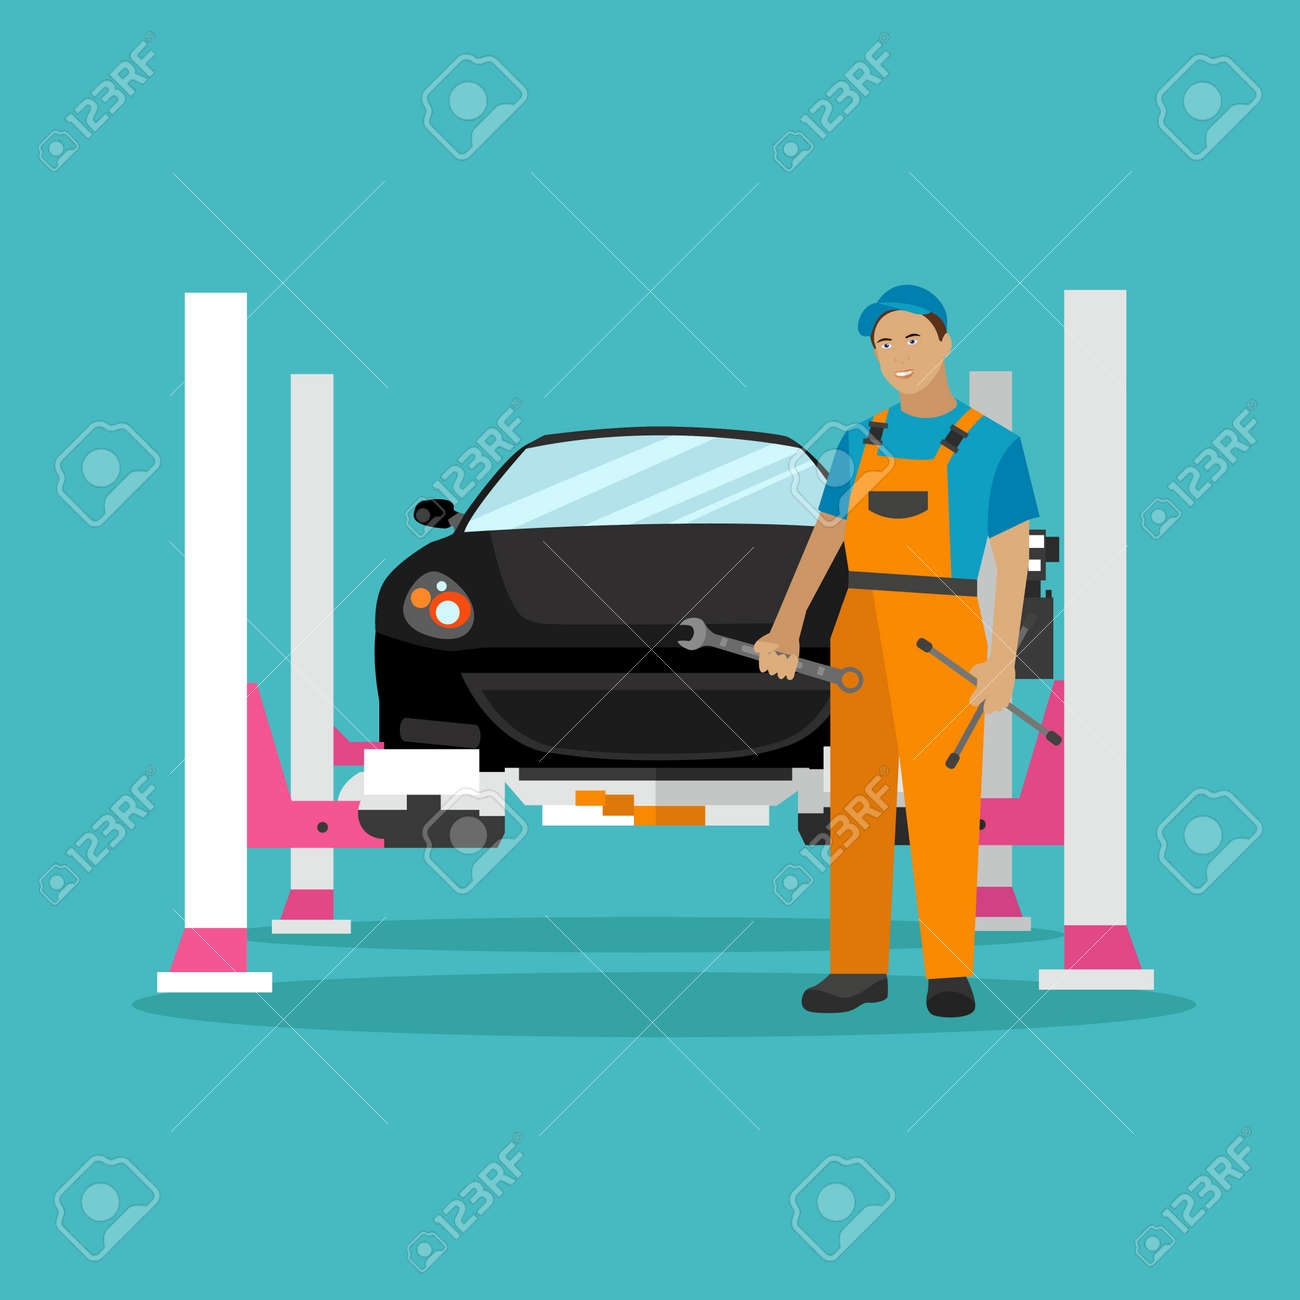 Car Repair Shop Concept Vector Illustration In Flat Style Design Royalty Free Cliparts Vectors And Stock Illustration Image 60048996